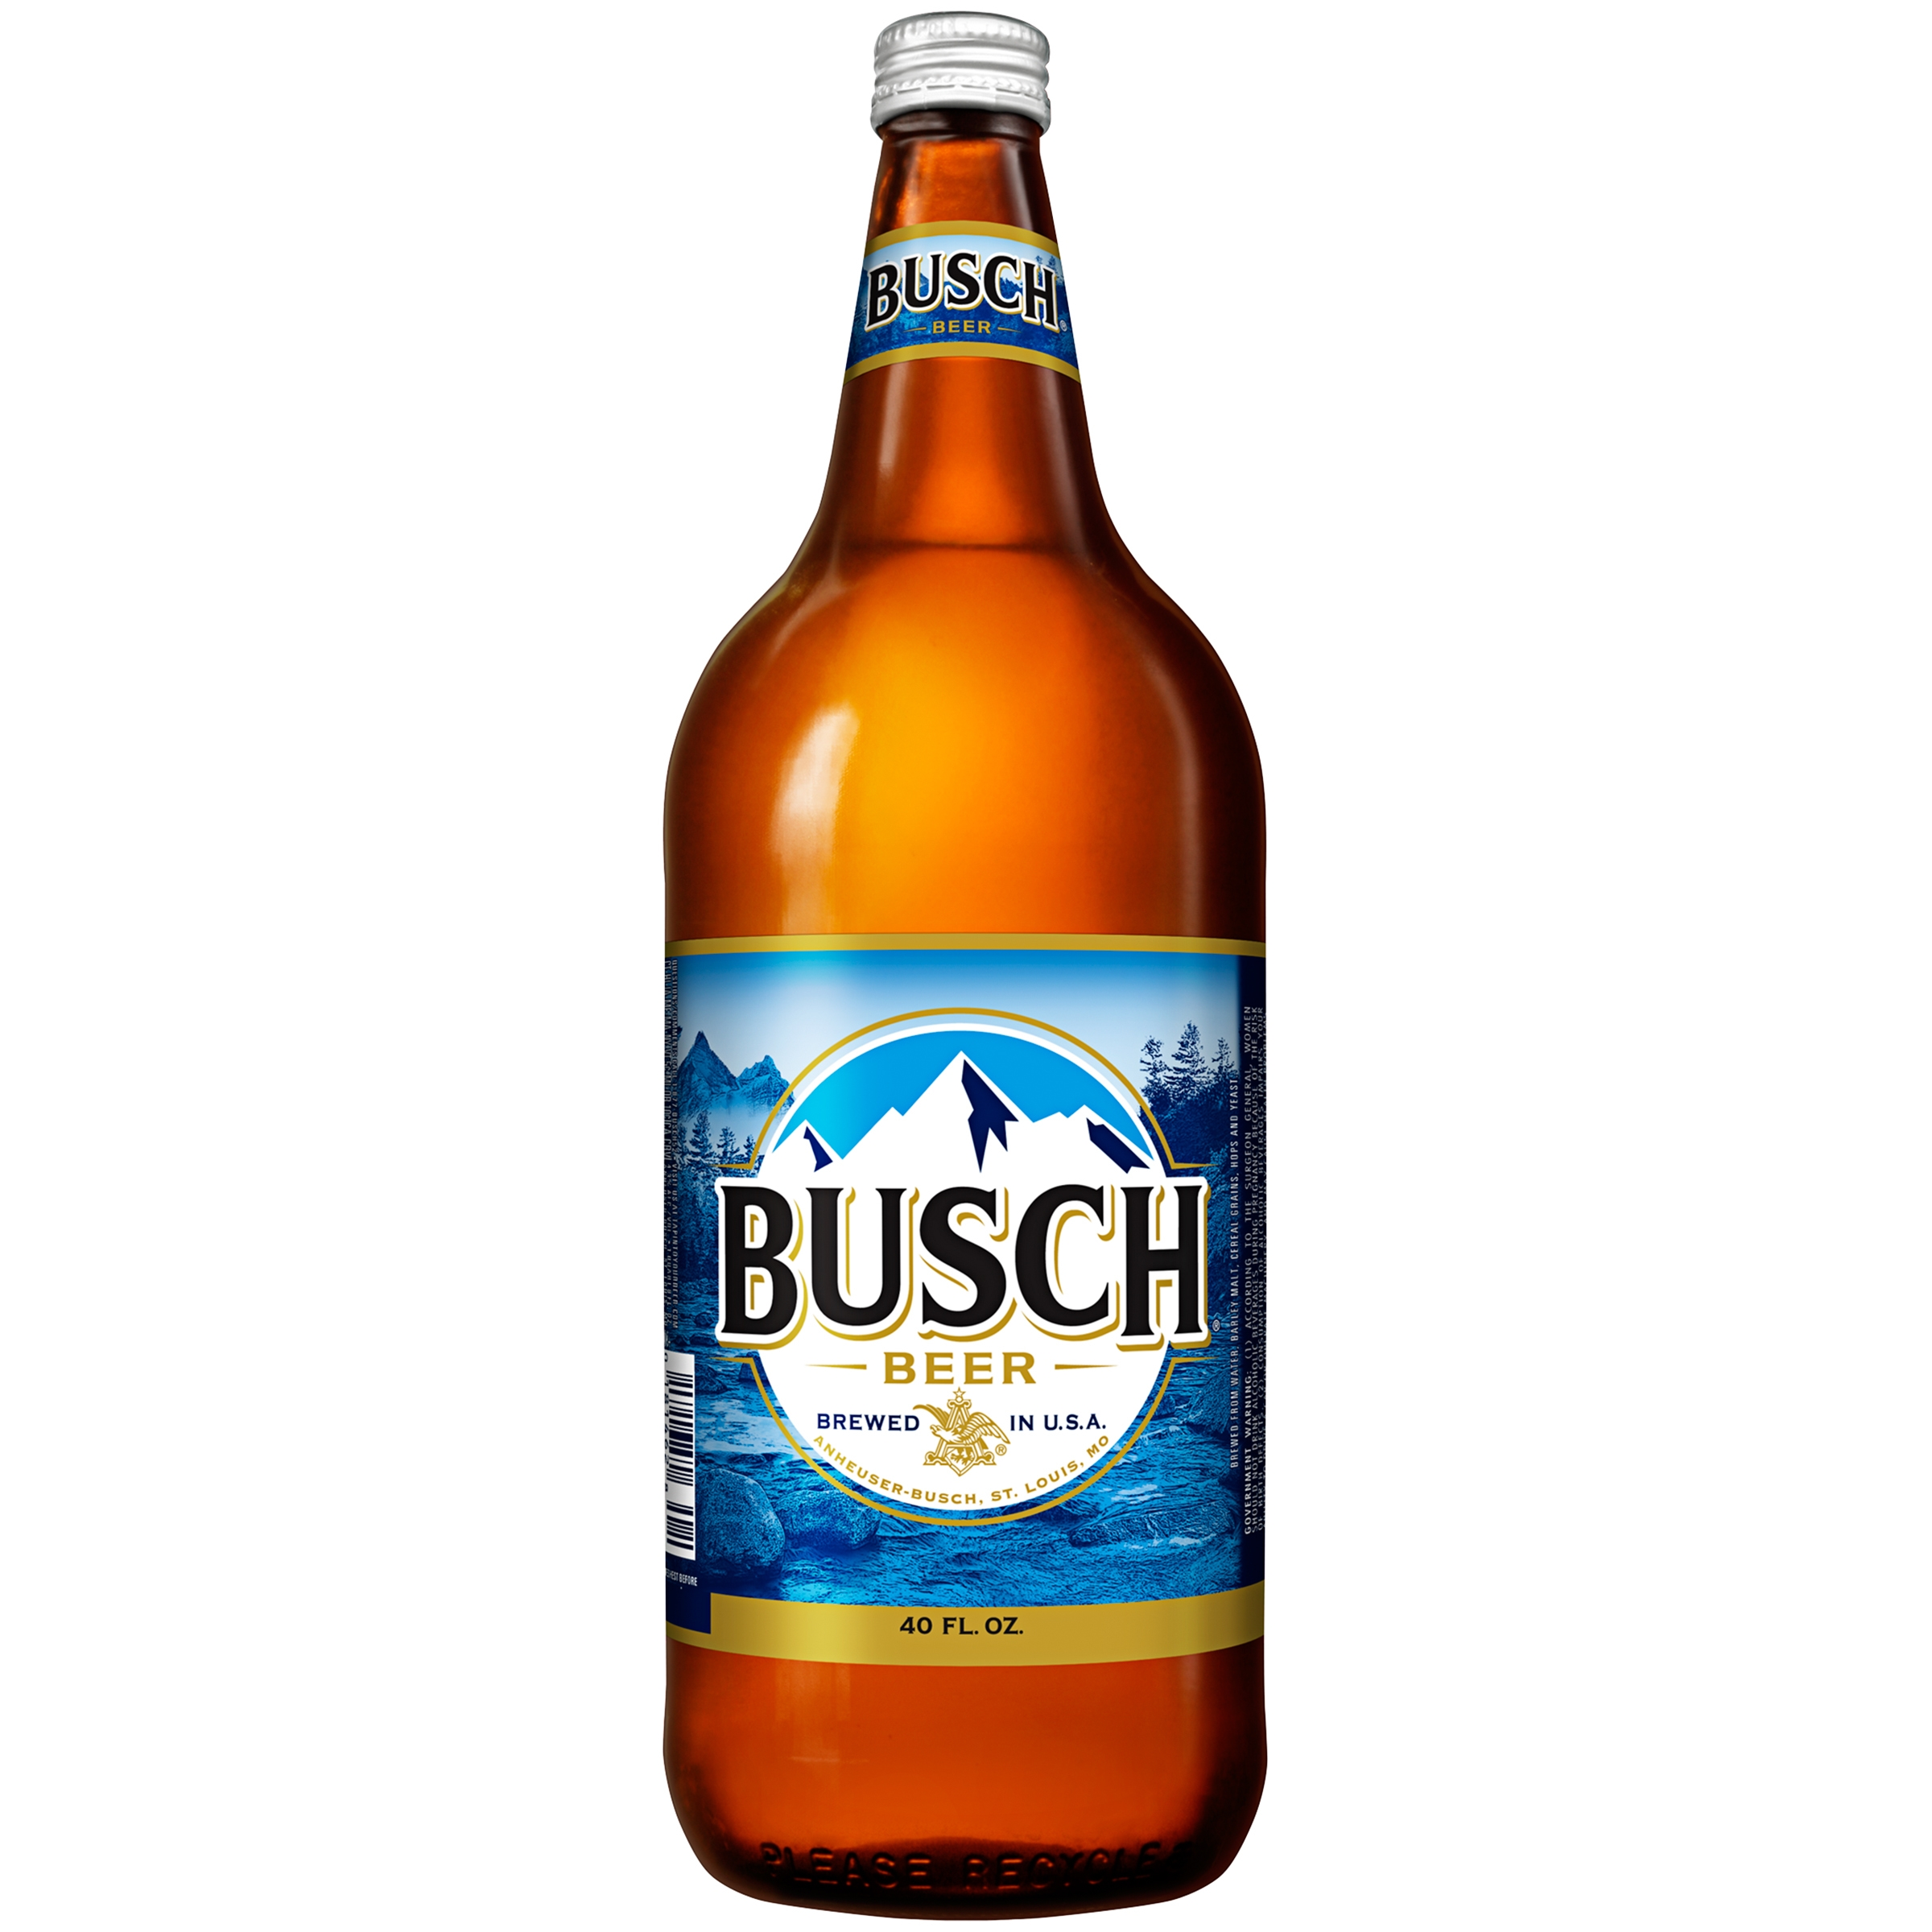 Busch Beer, 40 fl. oz. Bottle